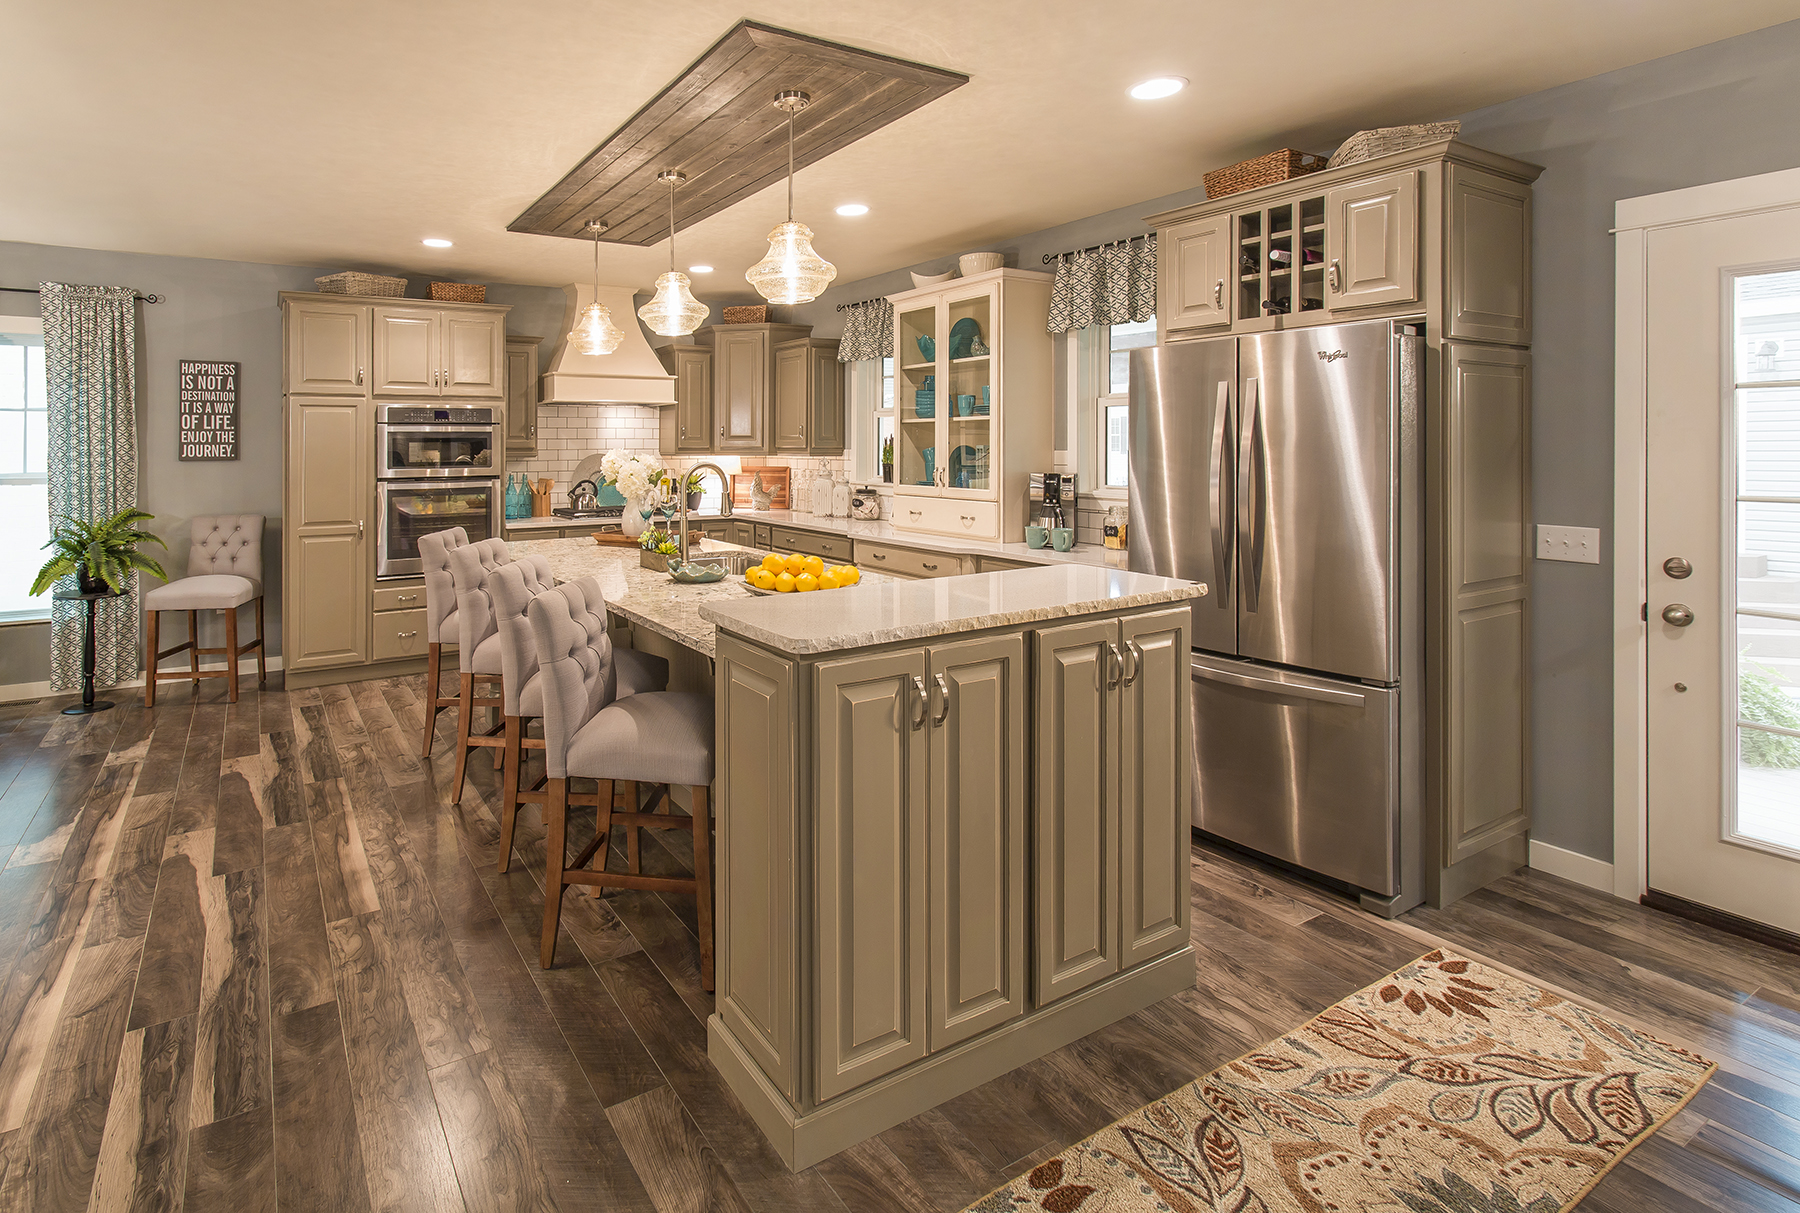 kitchen science aid classic ritz-craft custom homes honored by national awards program